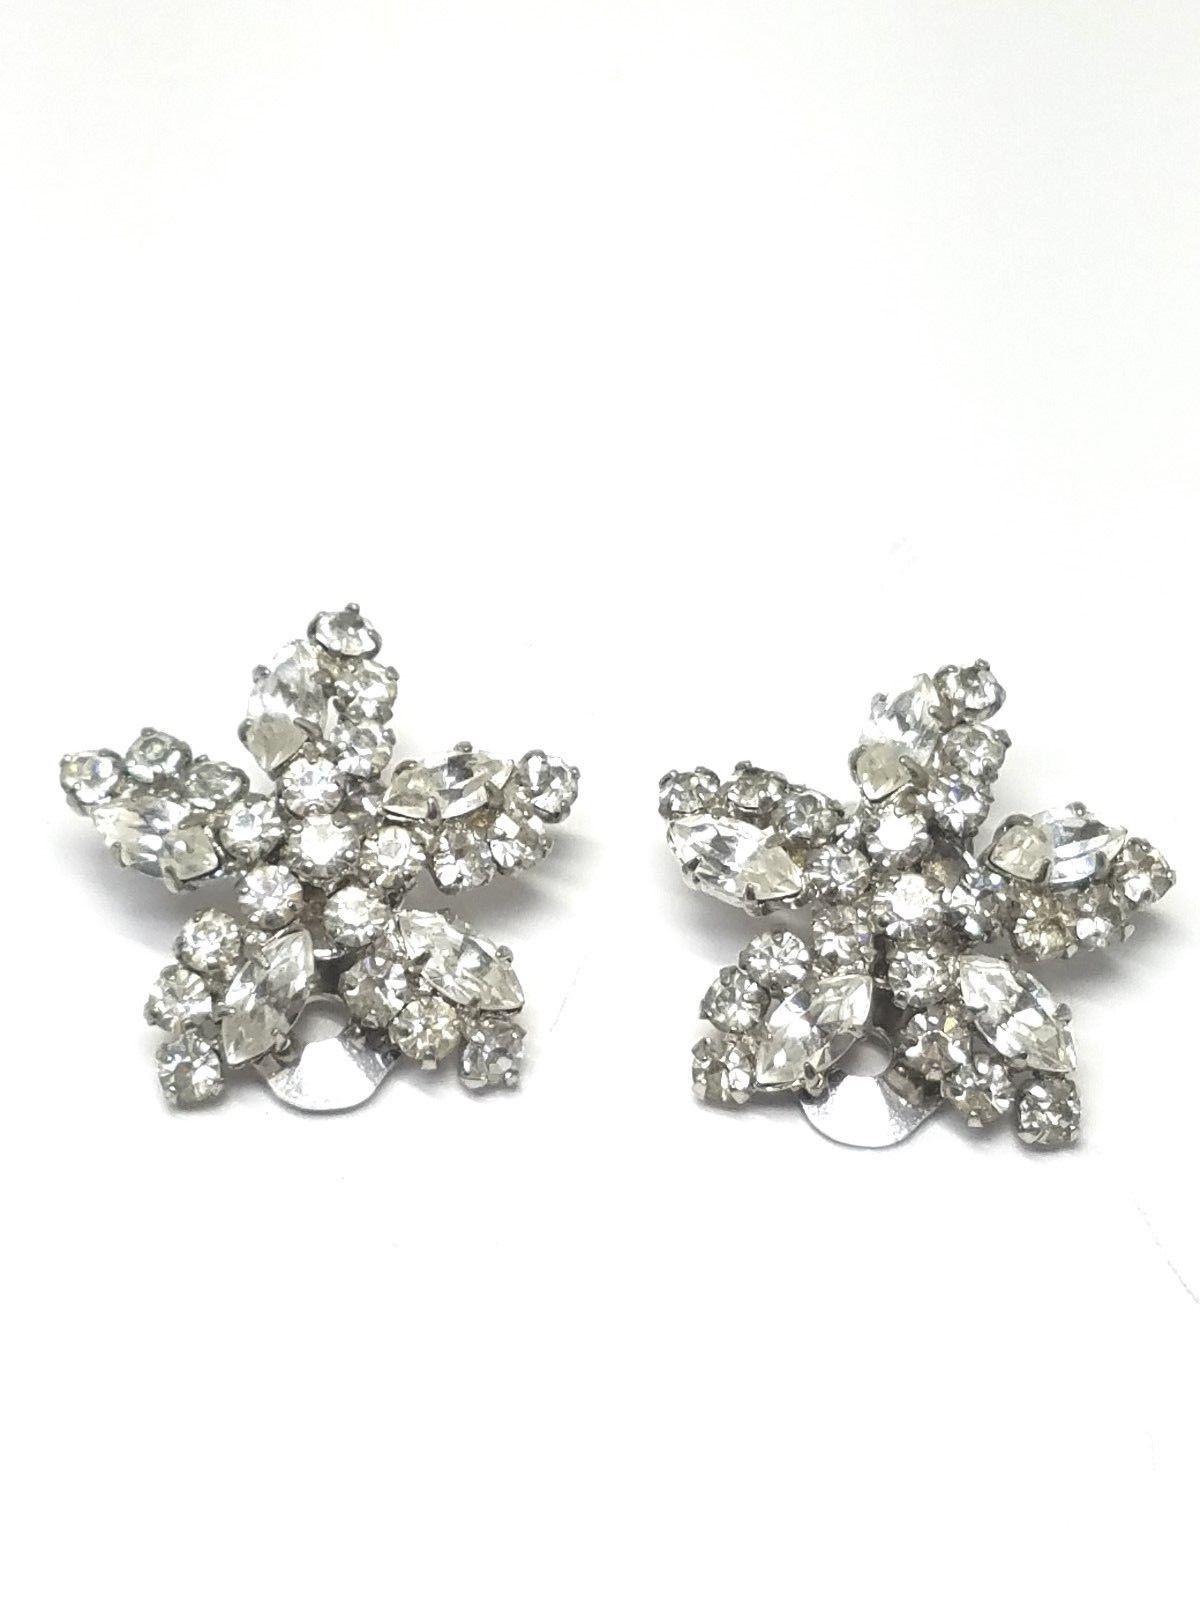 Austria Rhinestone Star Shaped Earrings Vintage Clip On Gorgeous